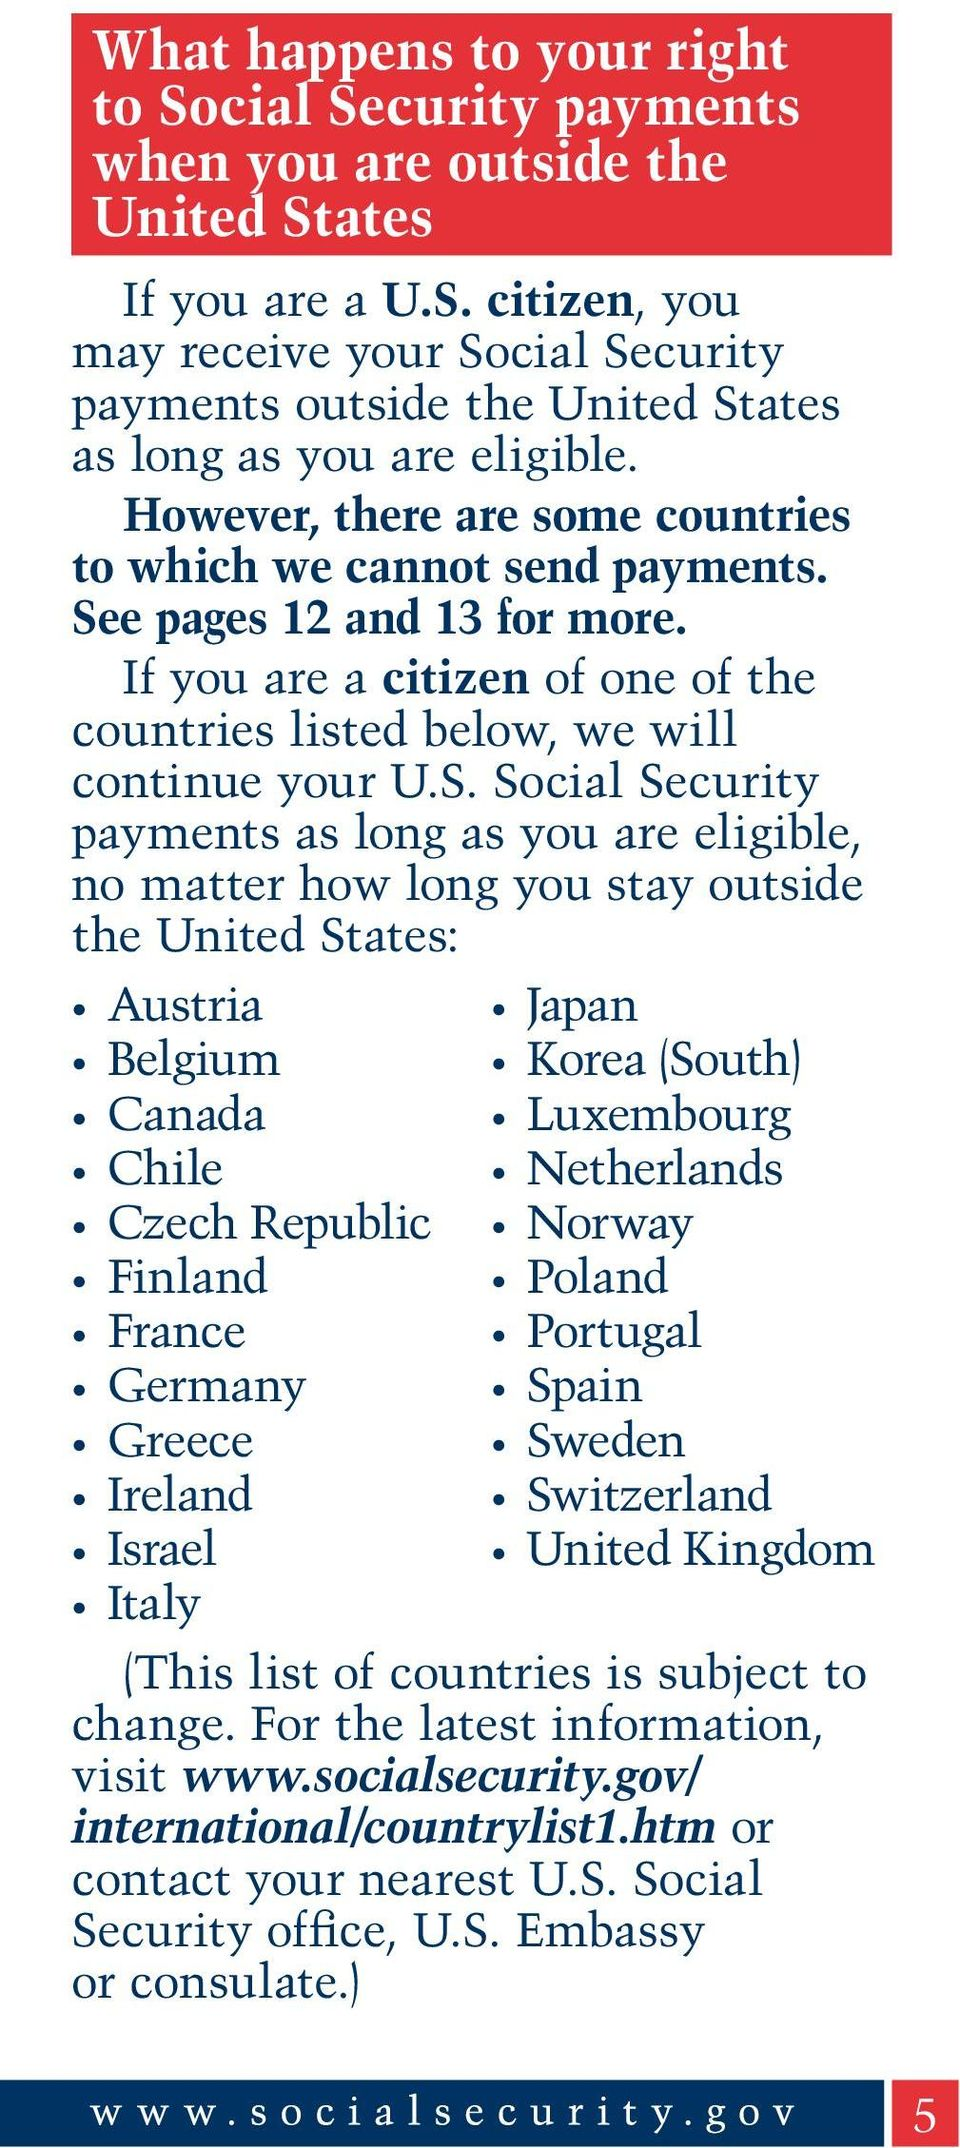 e pages 12 and 13 for more. If you are a citizen of one of the countries listed below, we will continue your U.S.